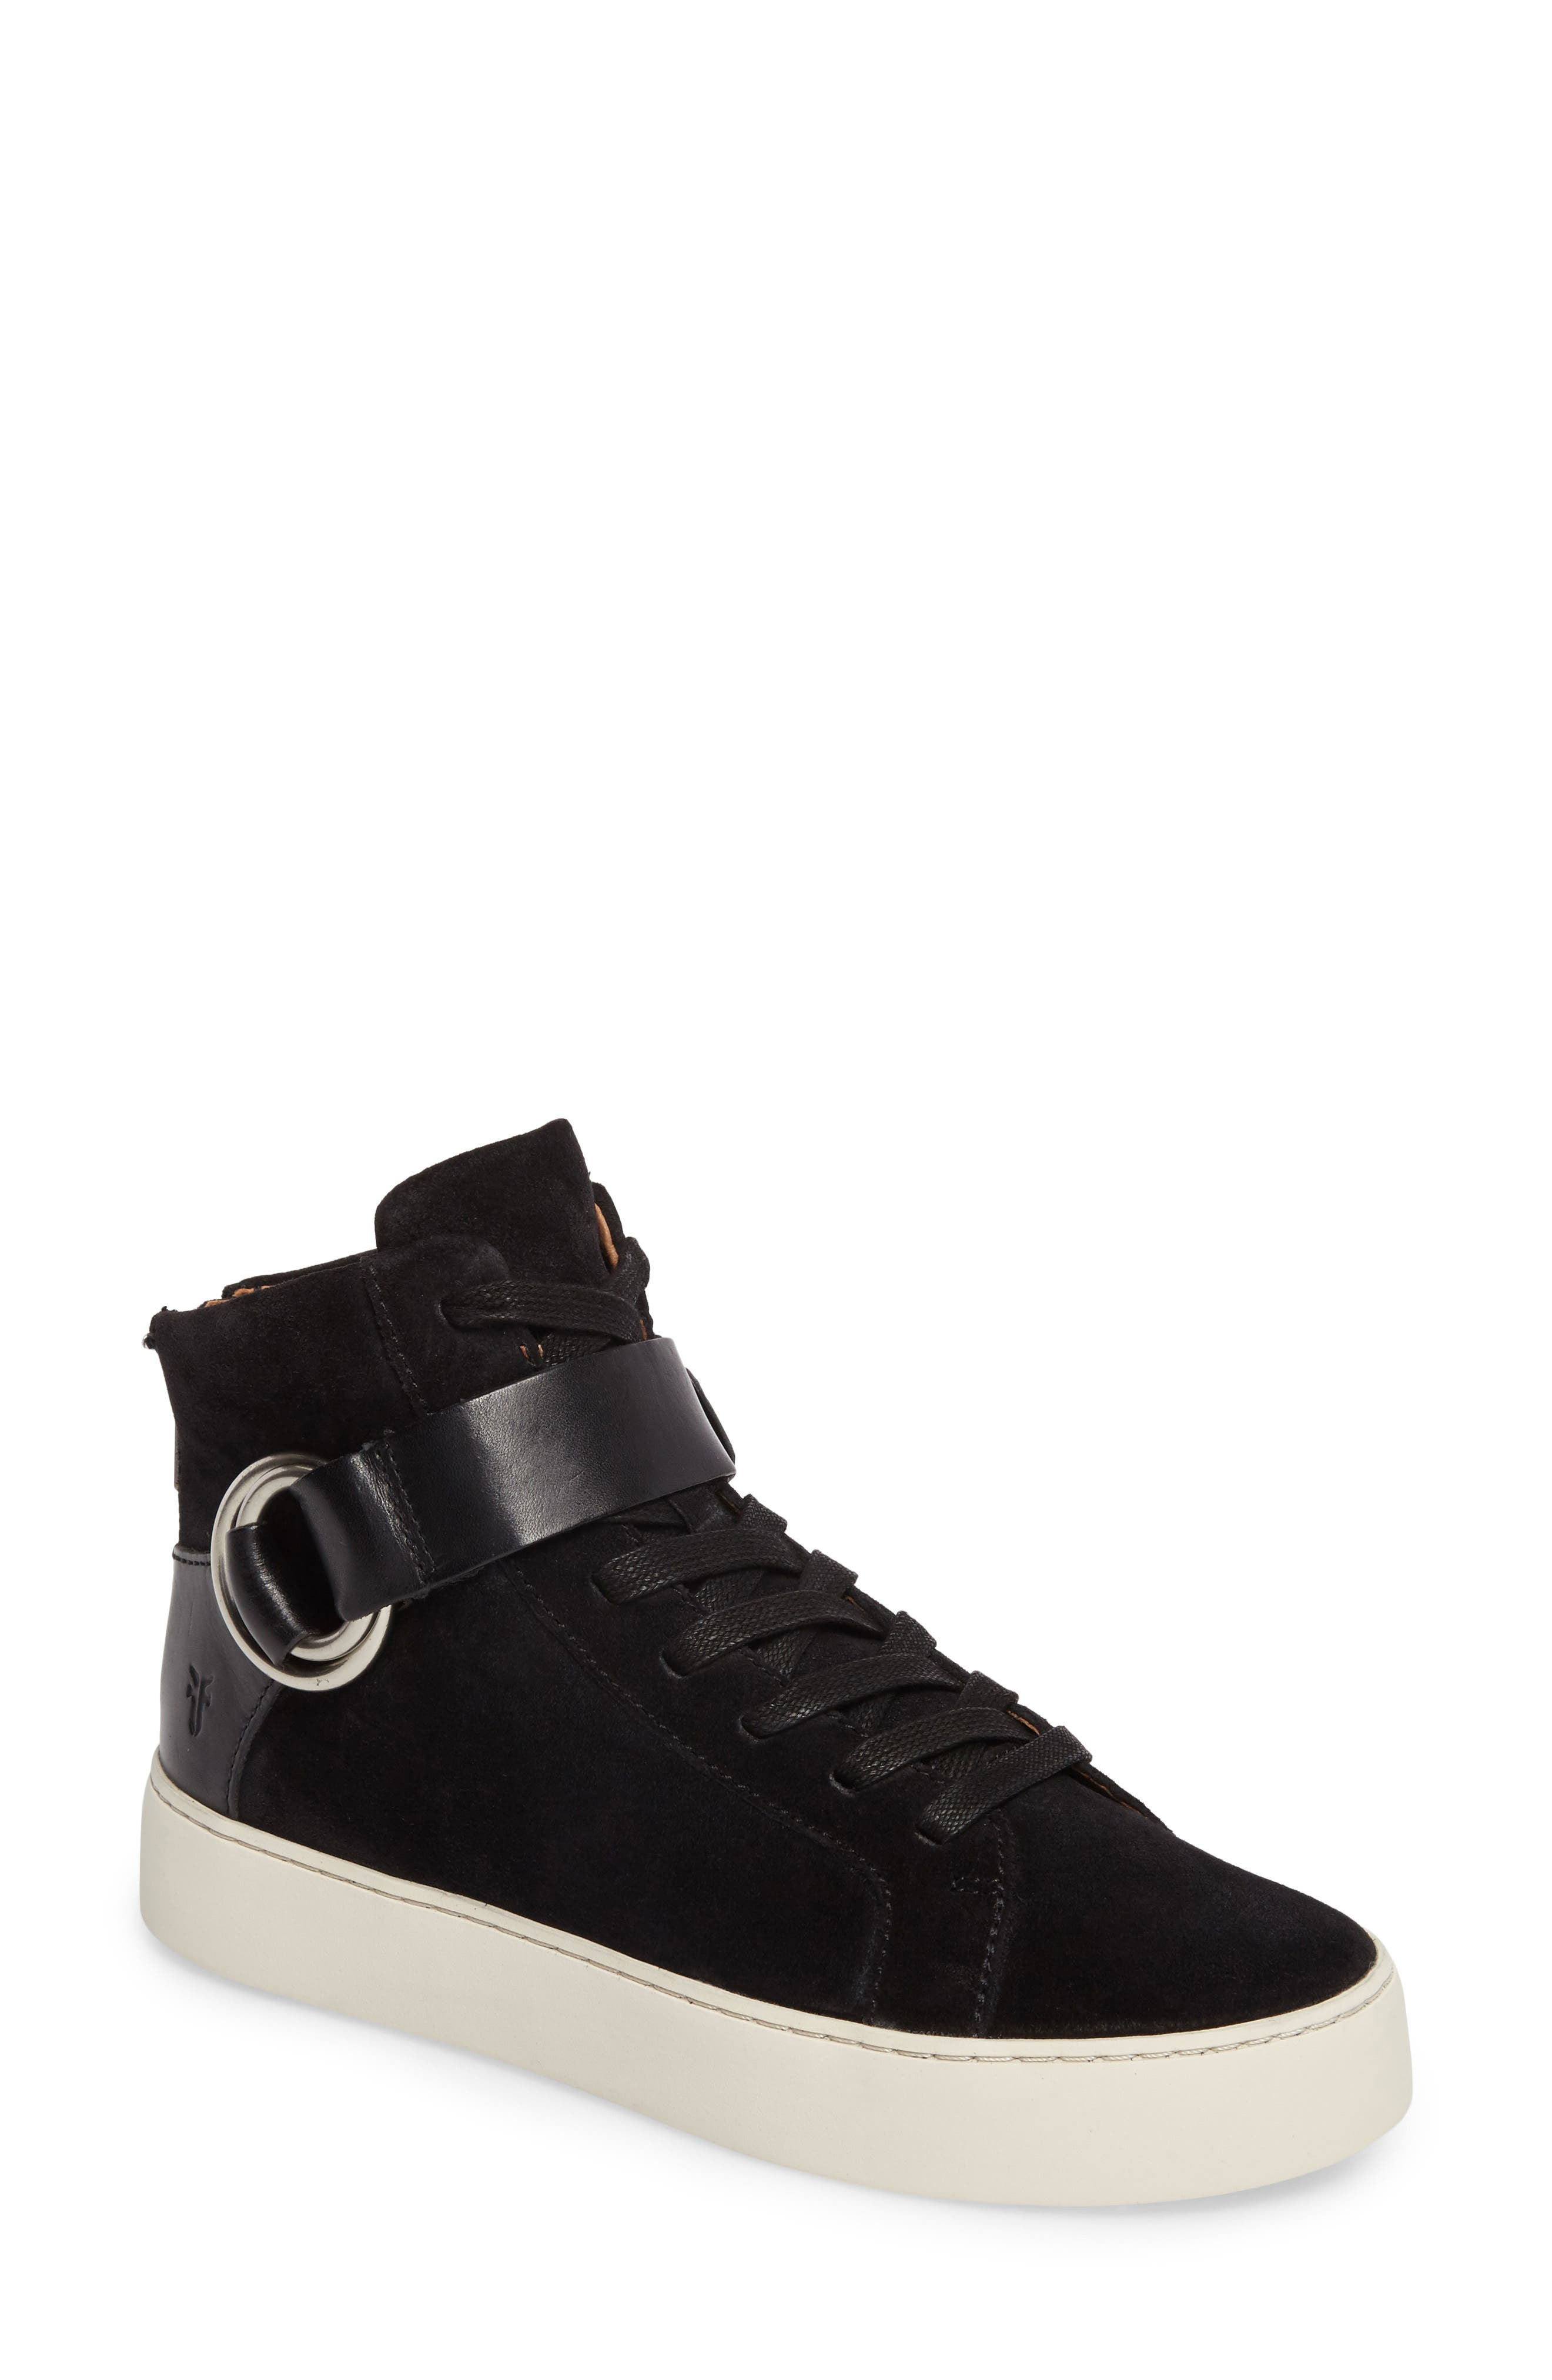 Lena Harness Sneaker,                             Main thumbnail 1, color,